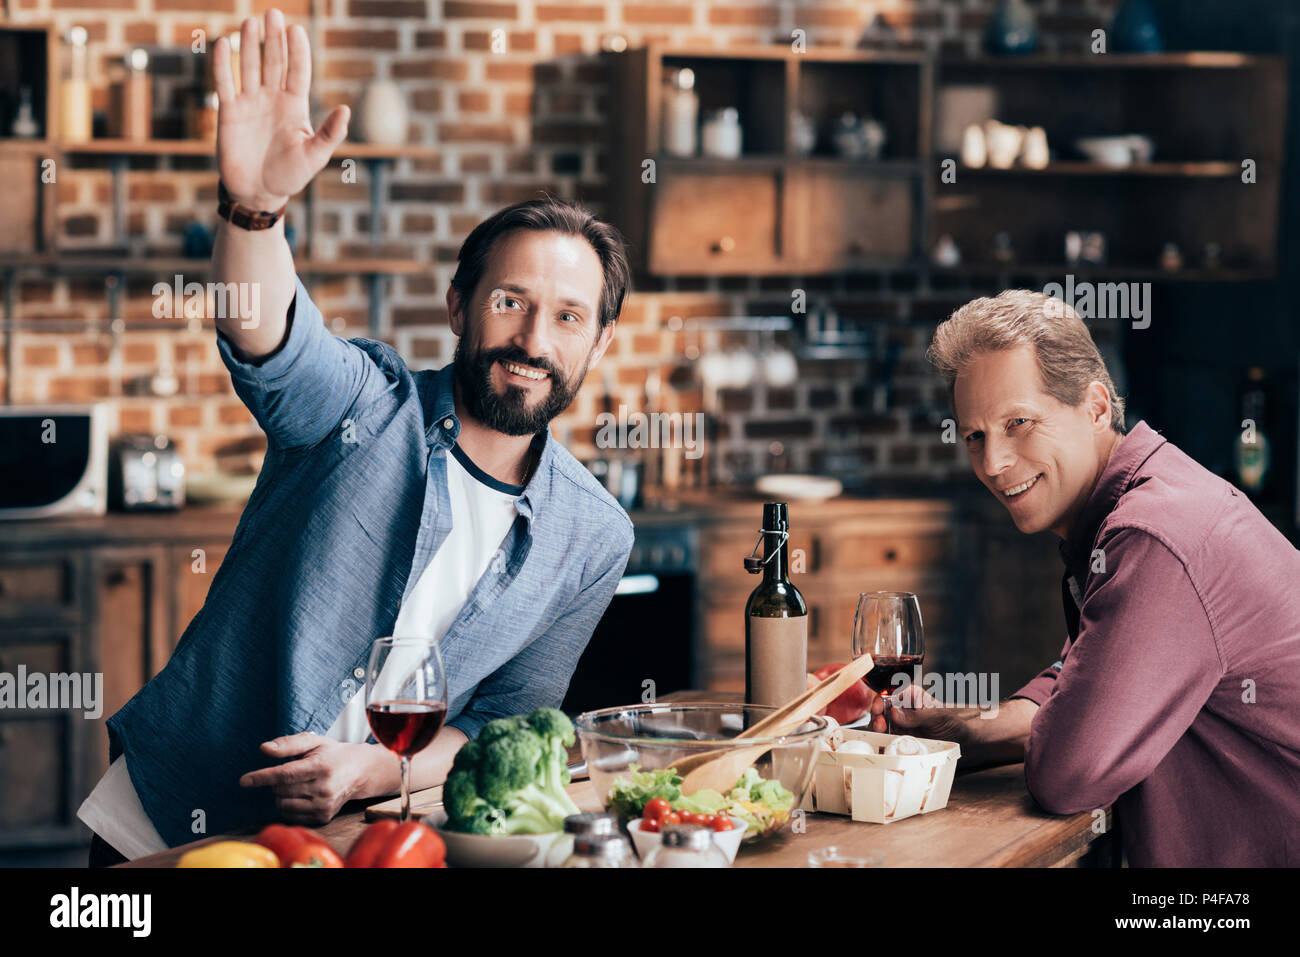 cheerful middle aged men drinking wine and waving hand while cooking together in kitchen - Stock Image